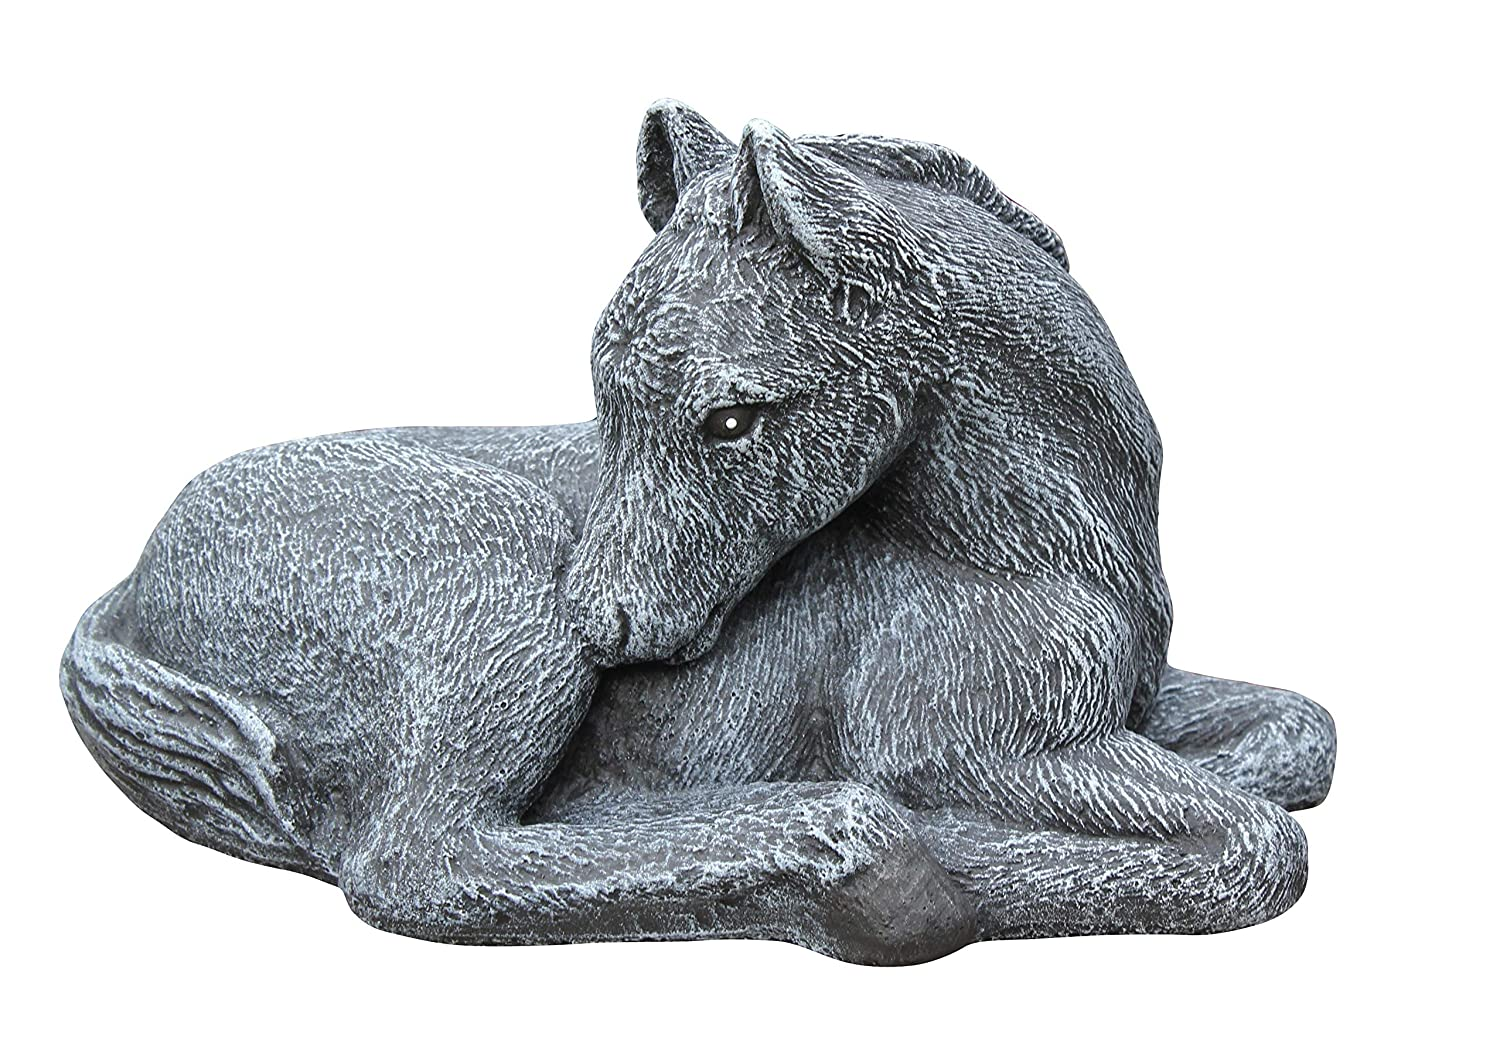 Garden ornament Horse Foal, Cast stone, Slate gray Tiefes Kunsthandwerk GbR